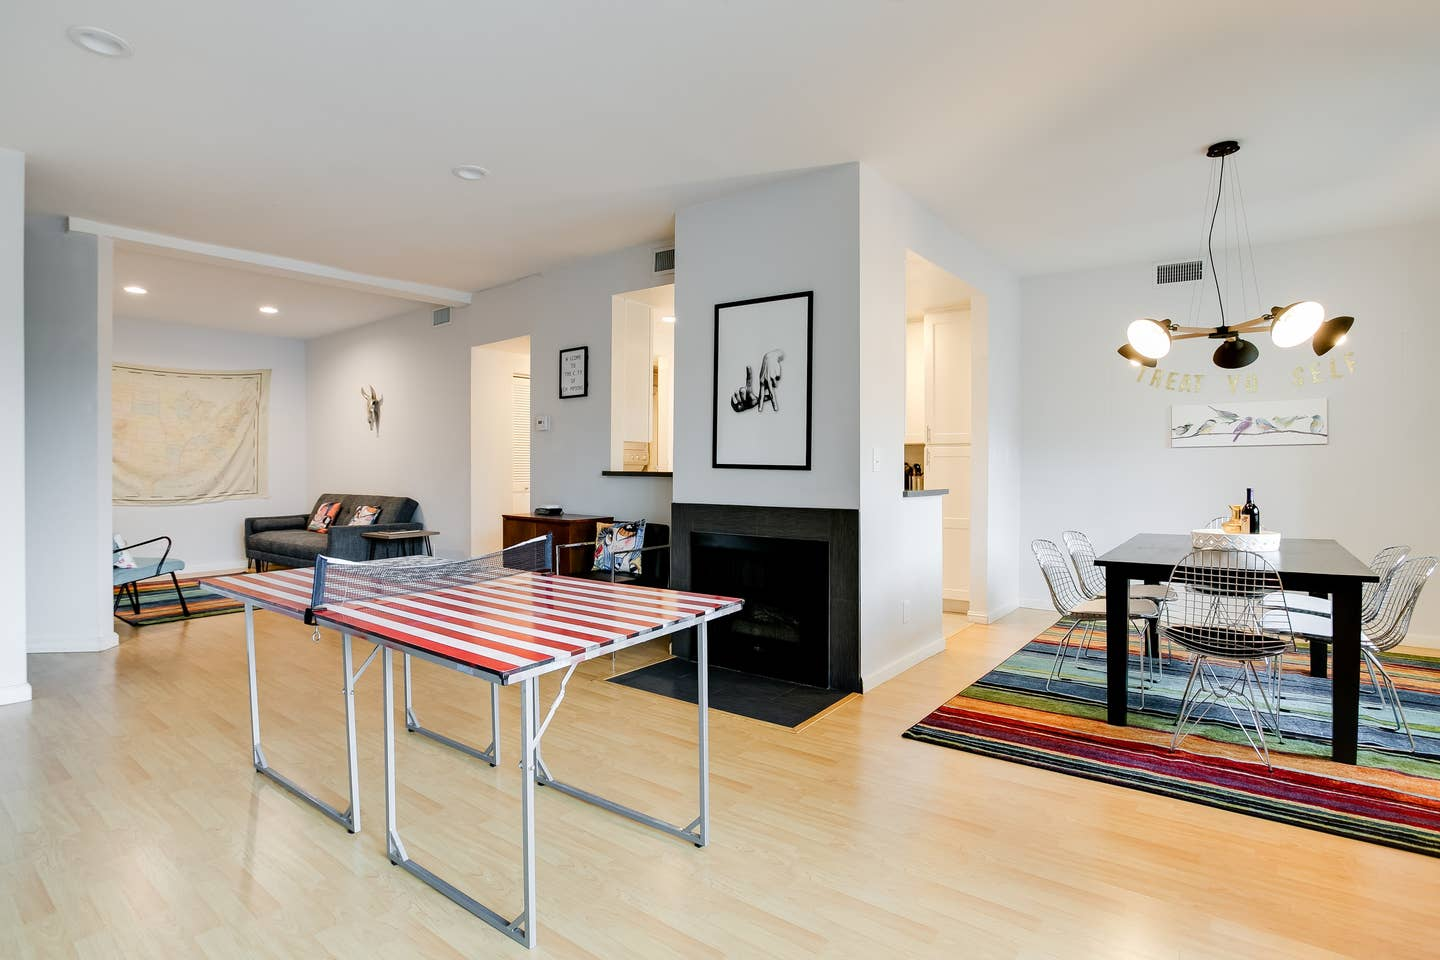 kitschy airbnb los angeles